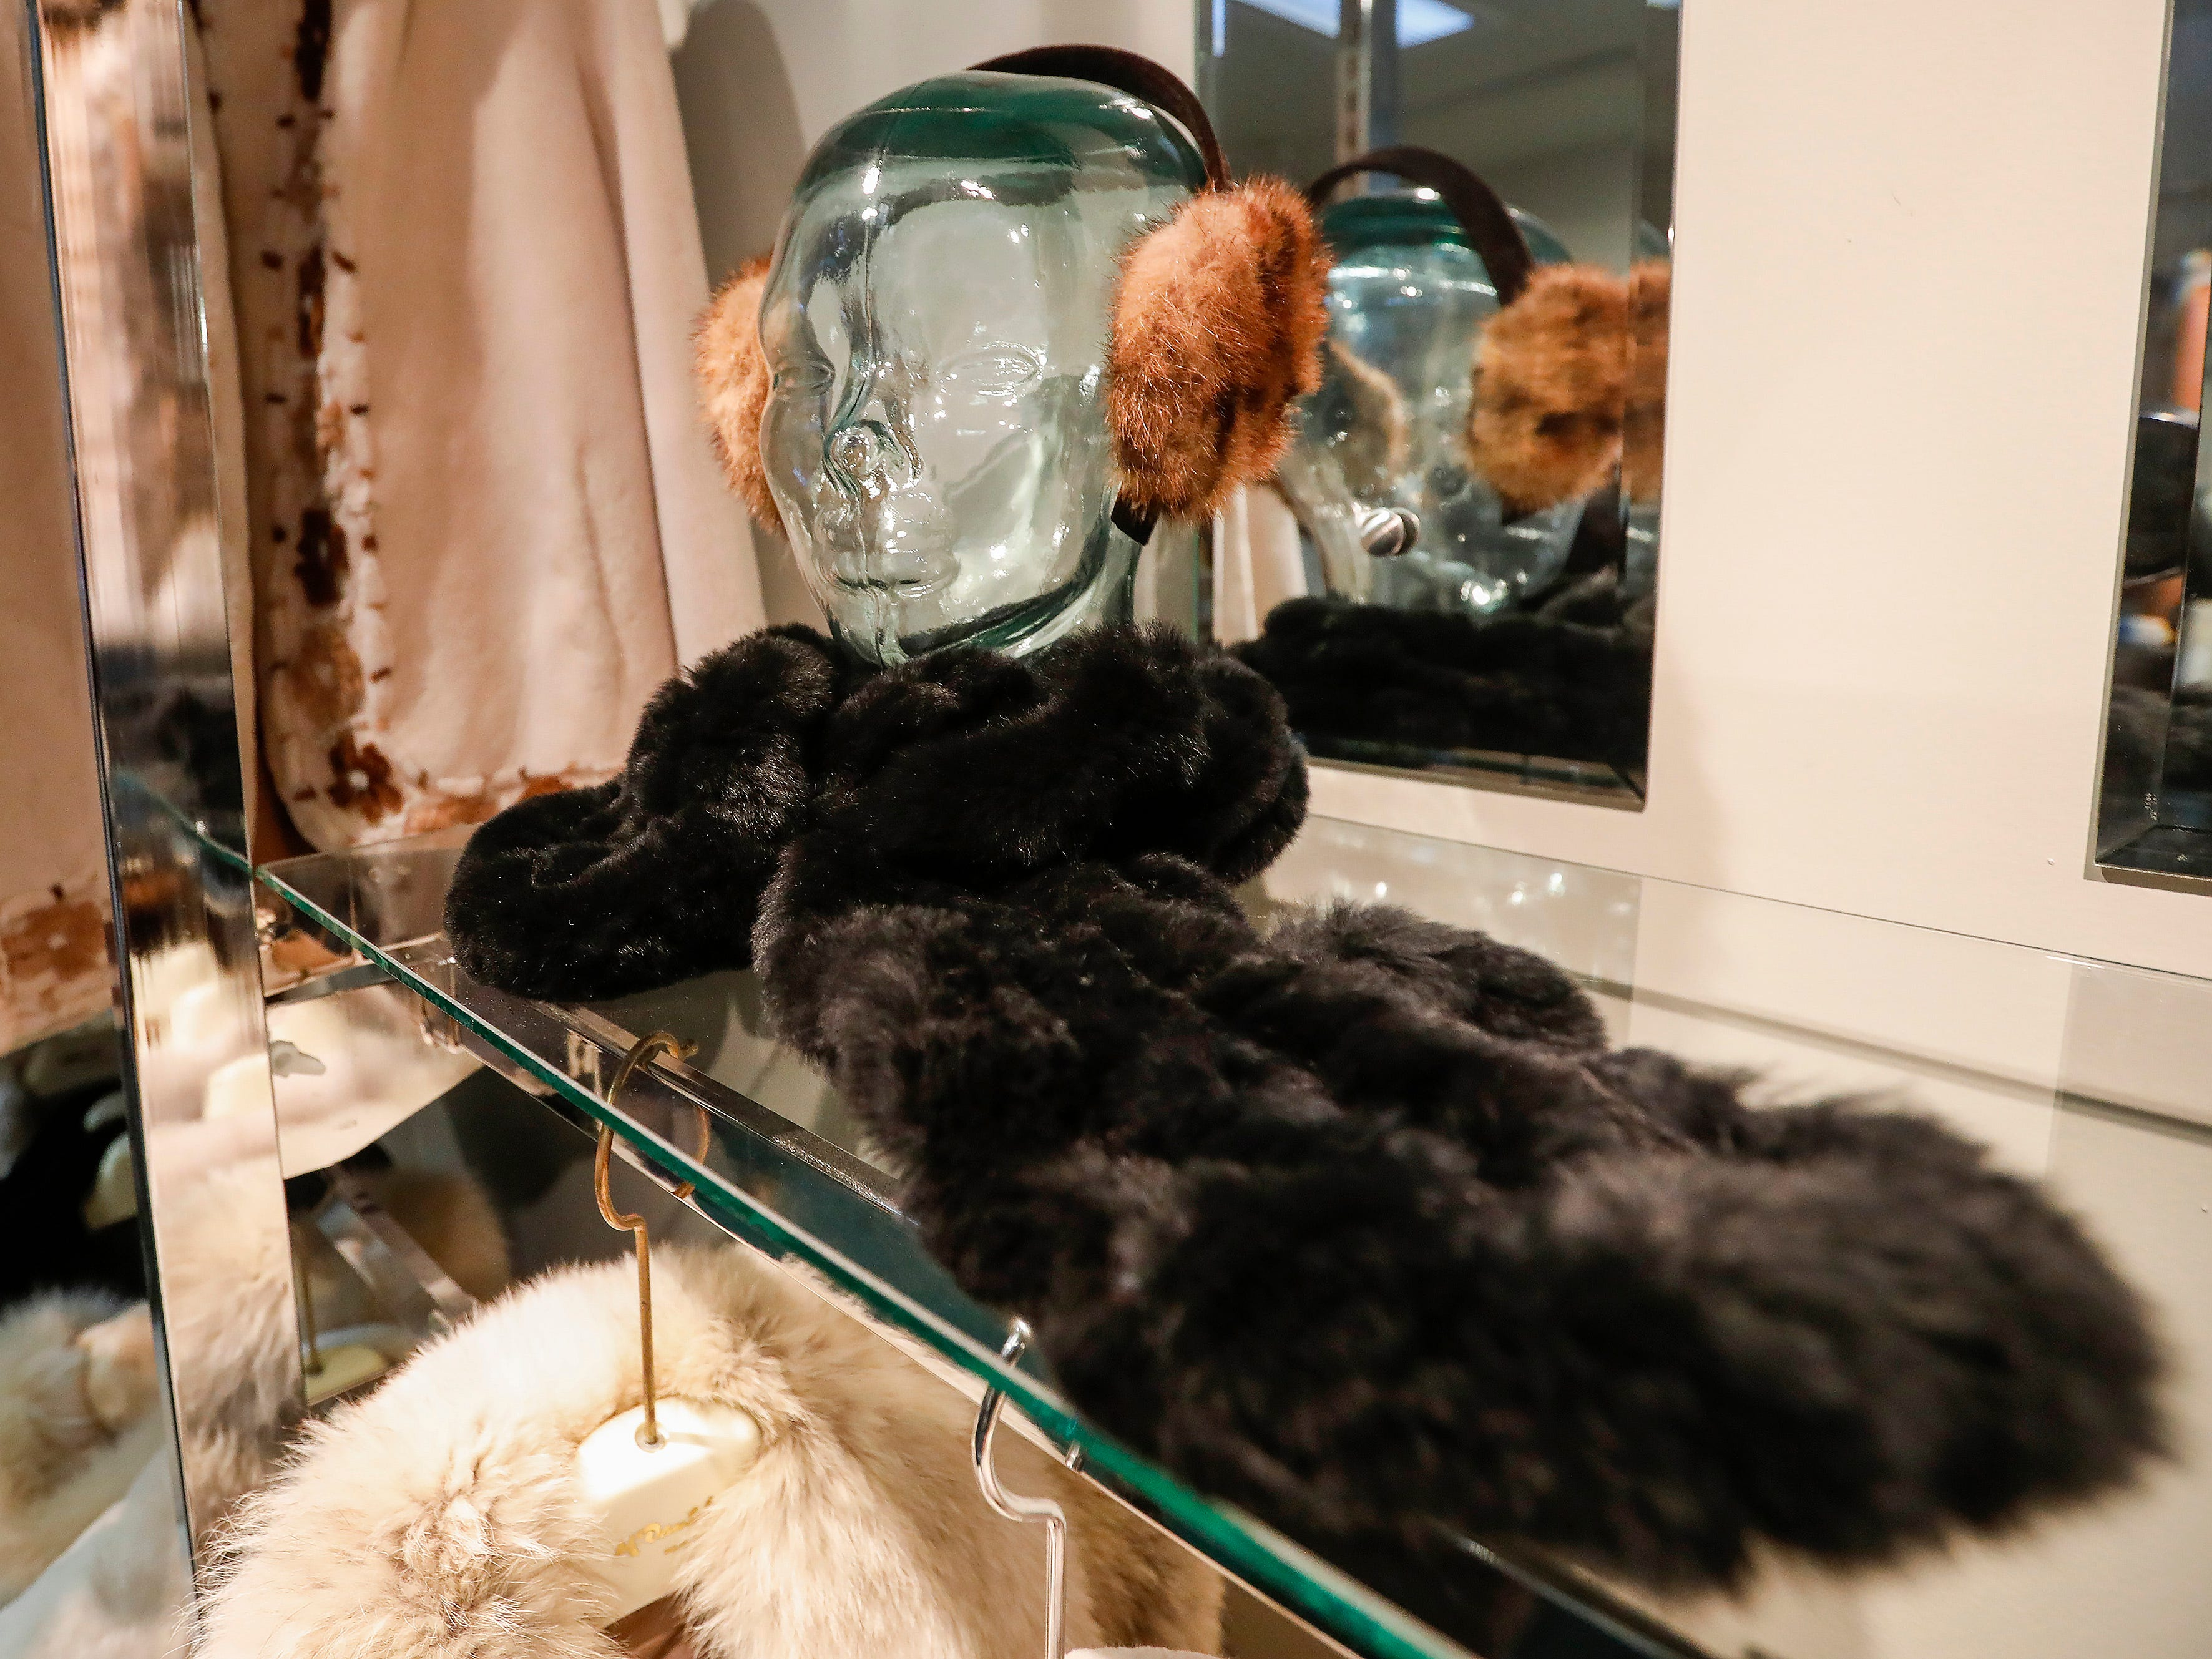 A look at some earmuffs and a scarf for sale at McDaniel Furs, located at 901 S. Glenstone Ave.